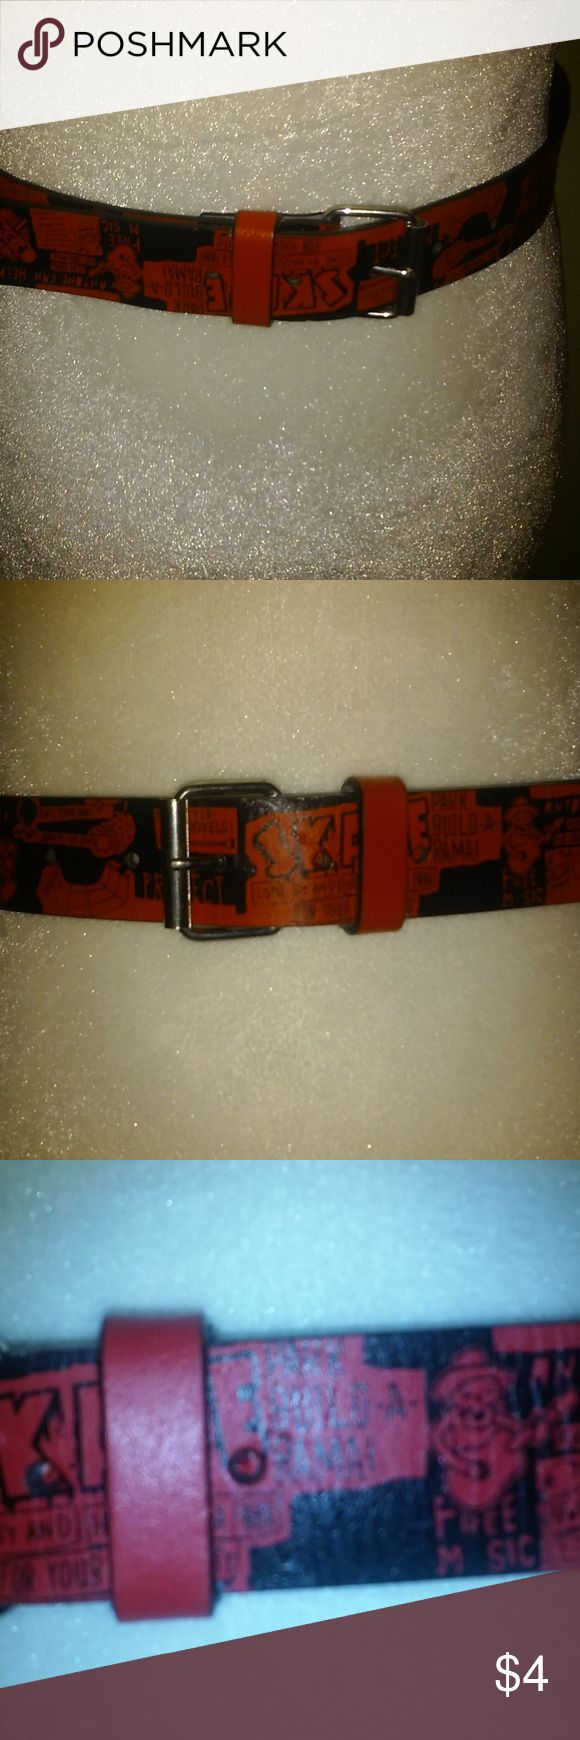 """TARGET Juniors Black And Red Belt Skater.Small Cute Junior's faux leather belt from Target.  It is 1 1/4"""" thick with a silver clasp and red and black SKATE cartoon themed design.  Pre-owned and in good condition.  There is a hole that was made directly in the middle of the belt.  It has 5 clasp holes and measures 33 1/2"""" long.  It is a size small and will fit a size 28"""" and lower waist.  Please view pictures. Thanks for looking! Target Accessories Belts"""